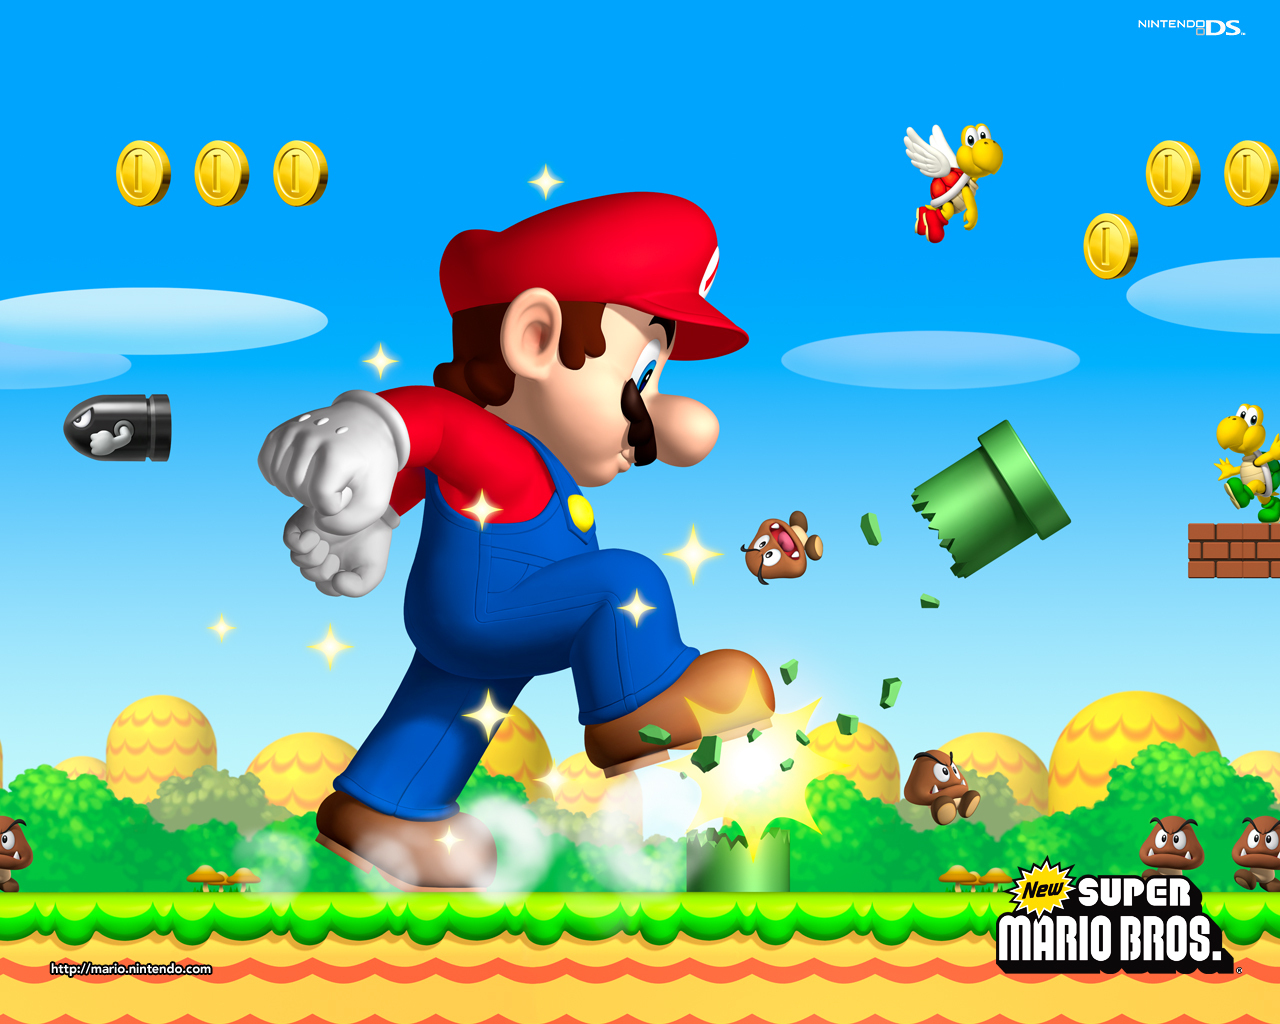 New Super Mario Brothers Wallpaper - Super Mario Bros